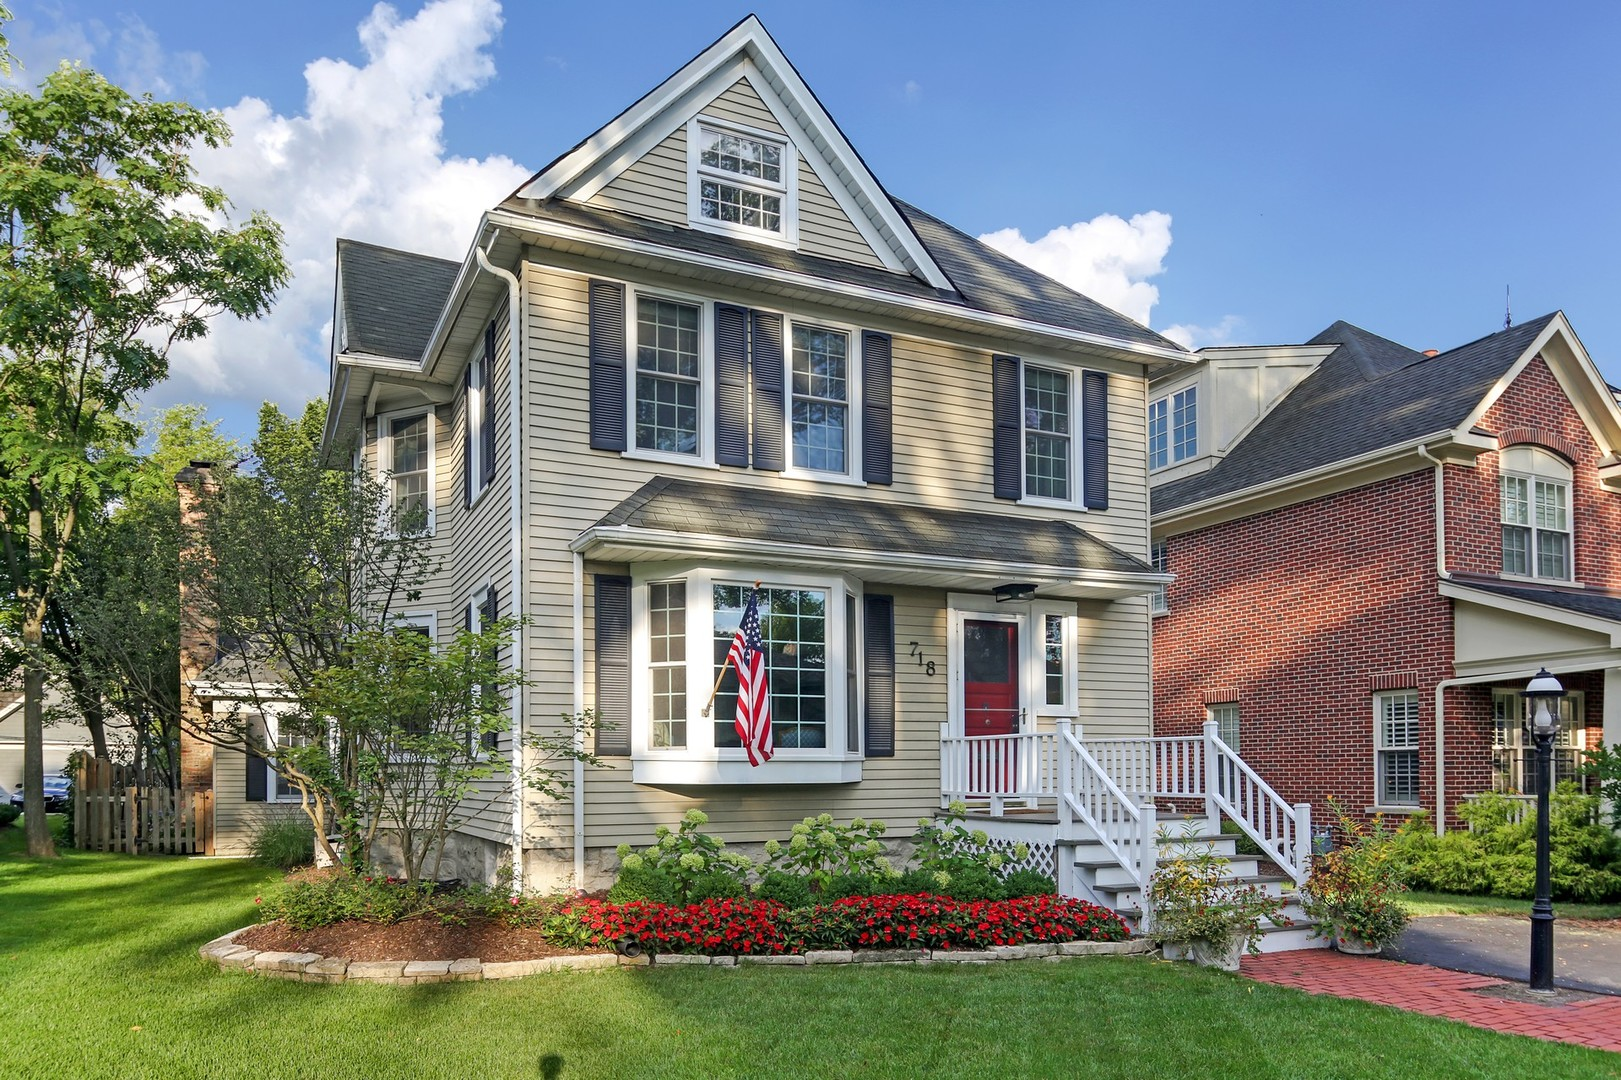 718 South Lincoln Street, Hinsdale, Illinois 60521